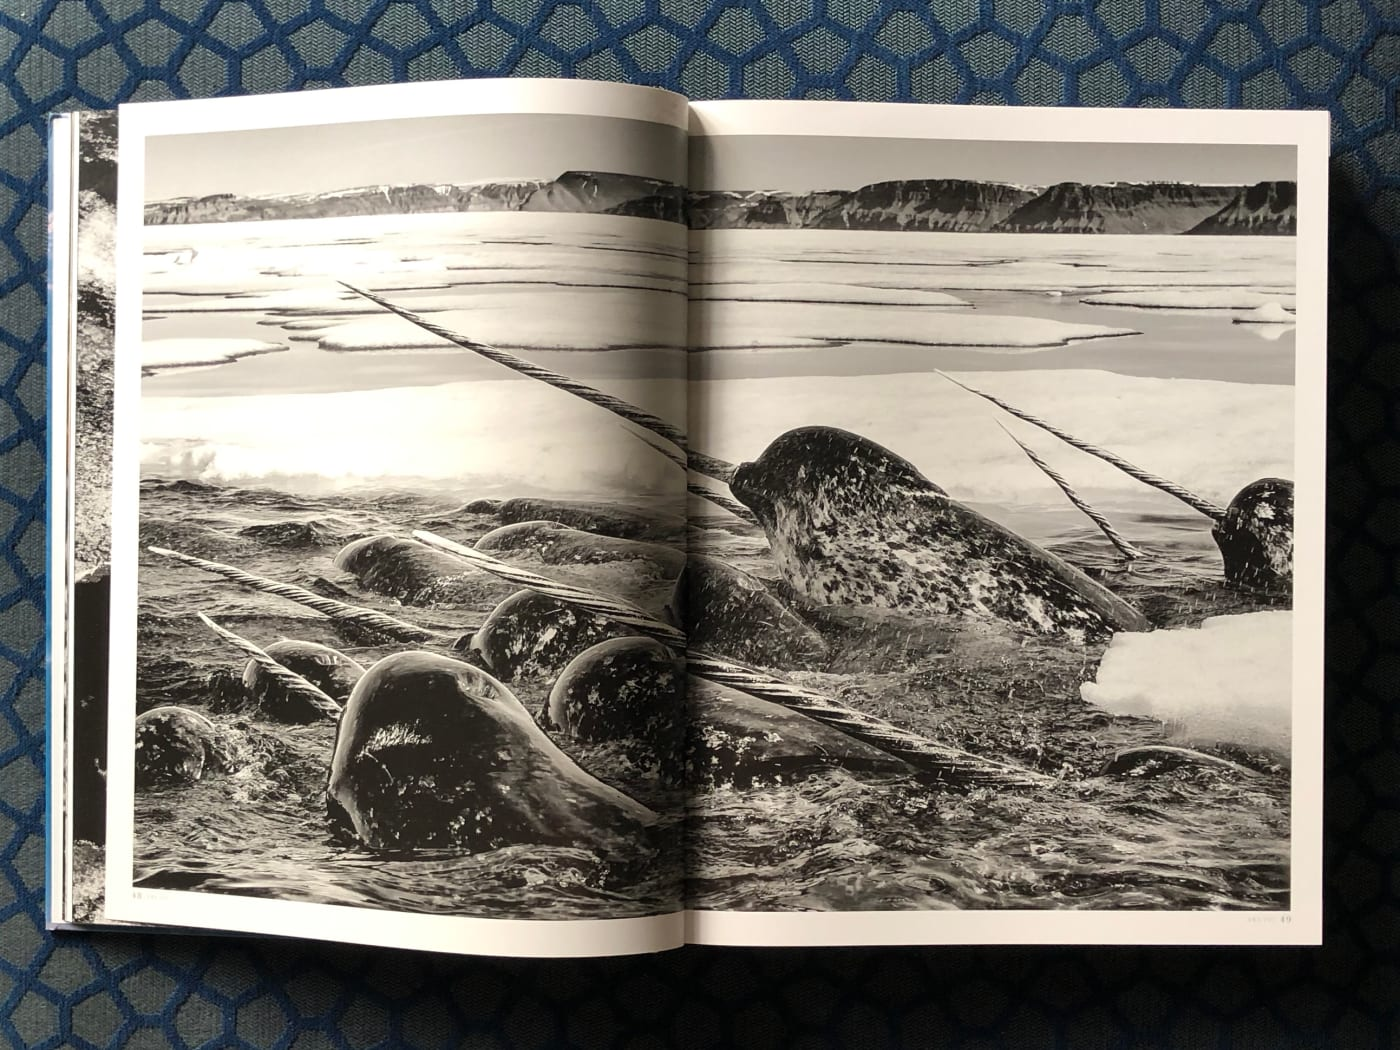 A page from 'Born to Ice' book showing Narwhals.